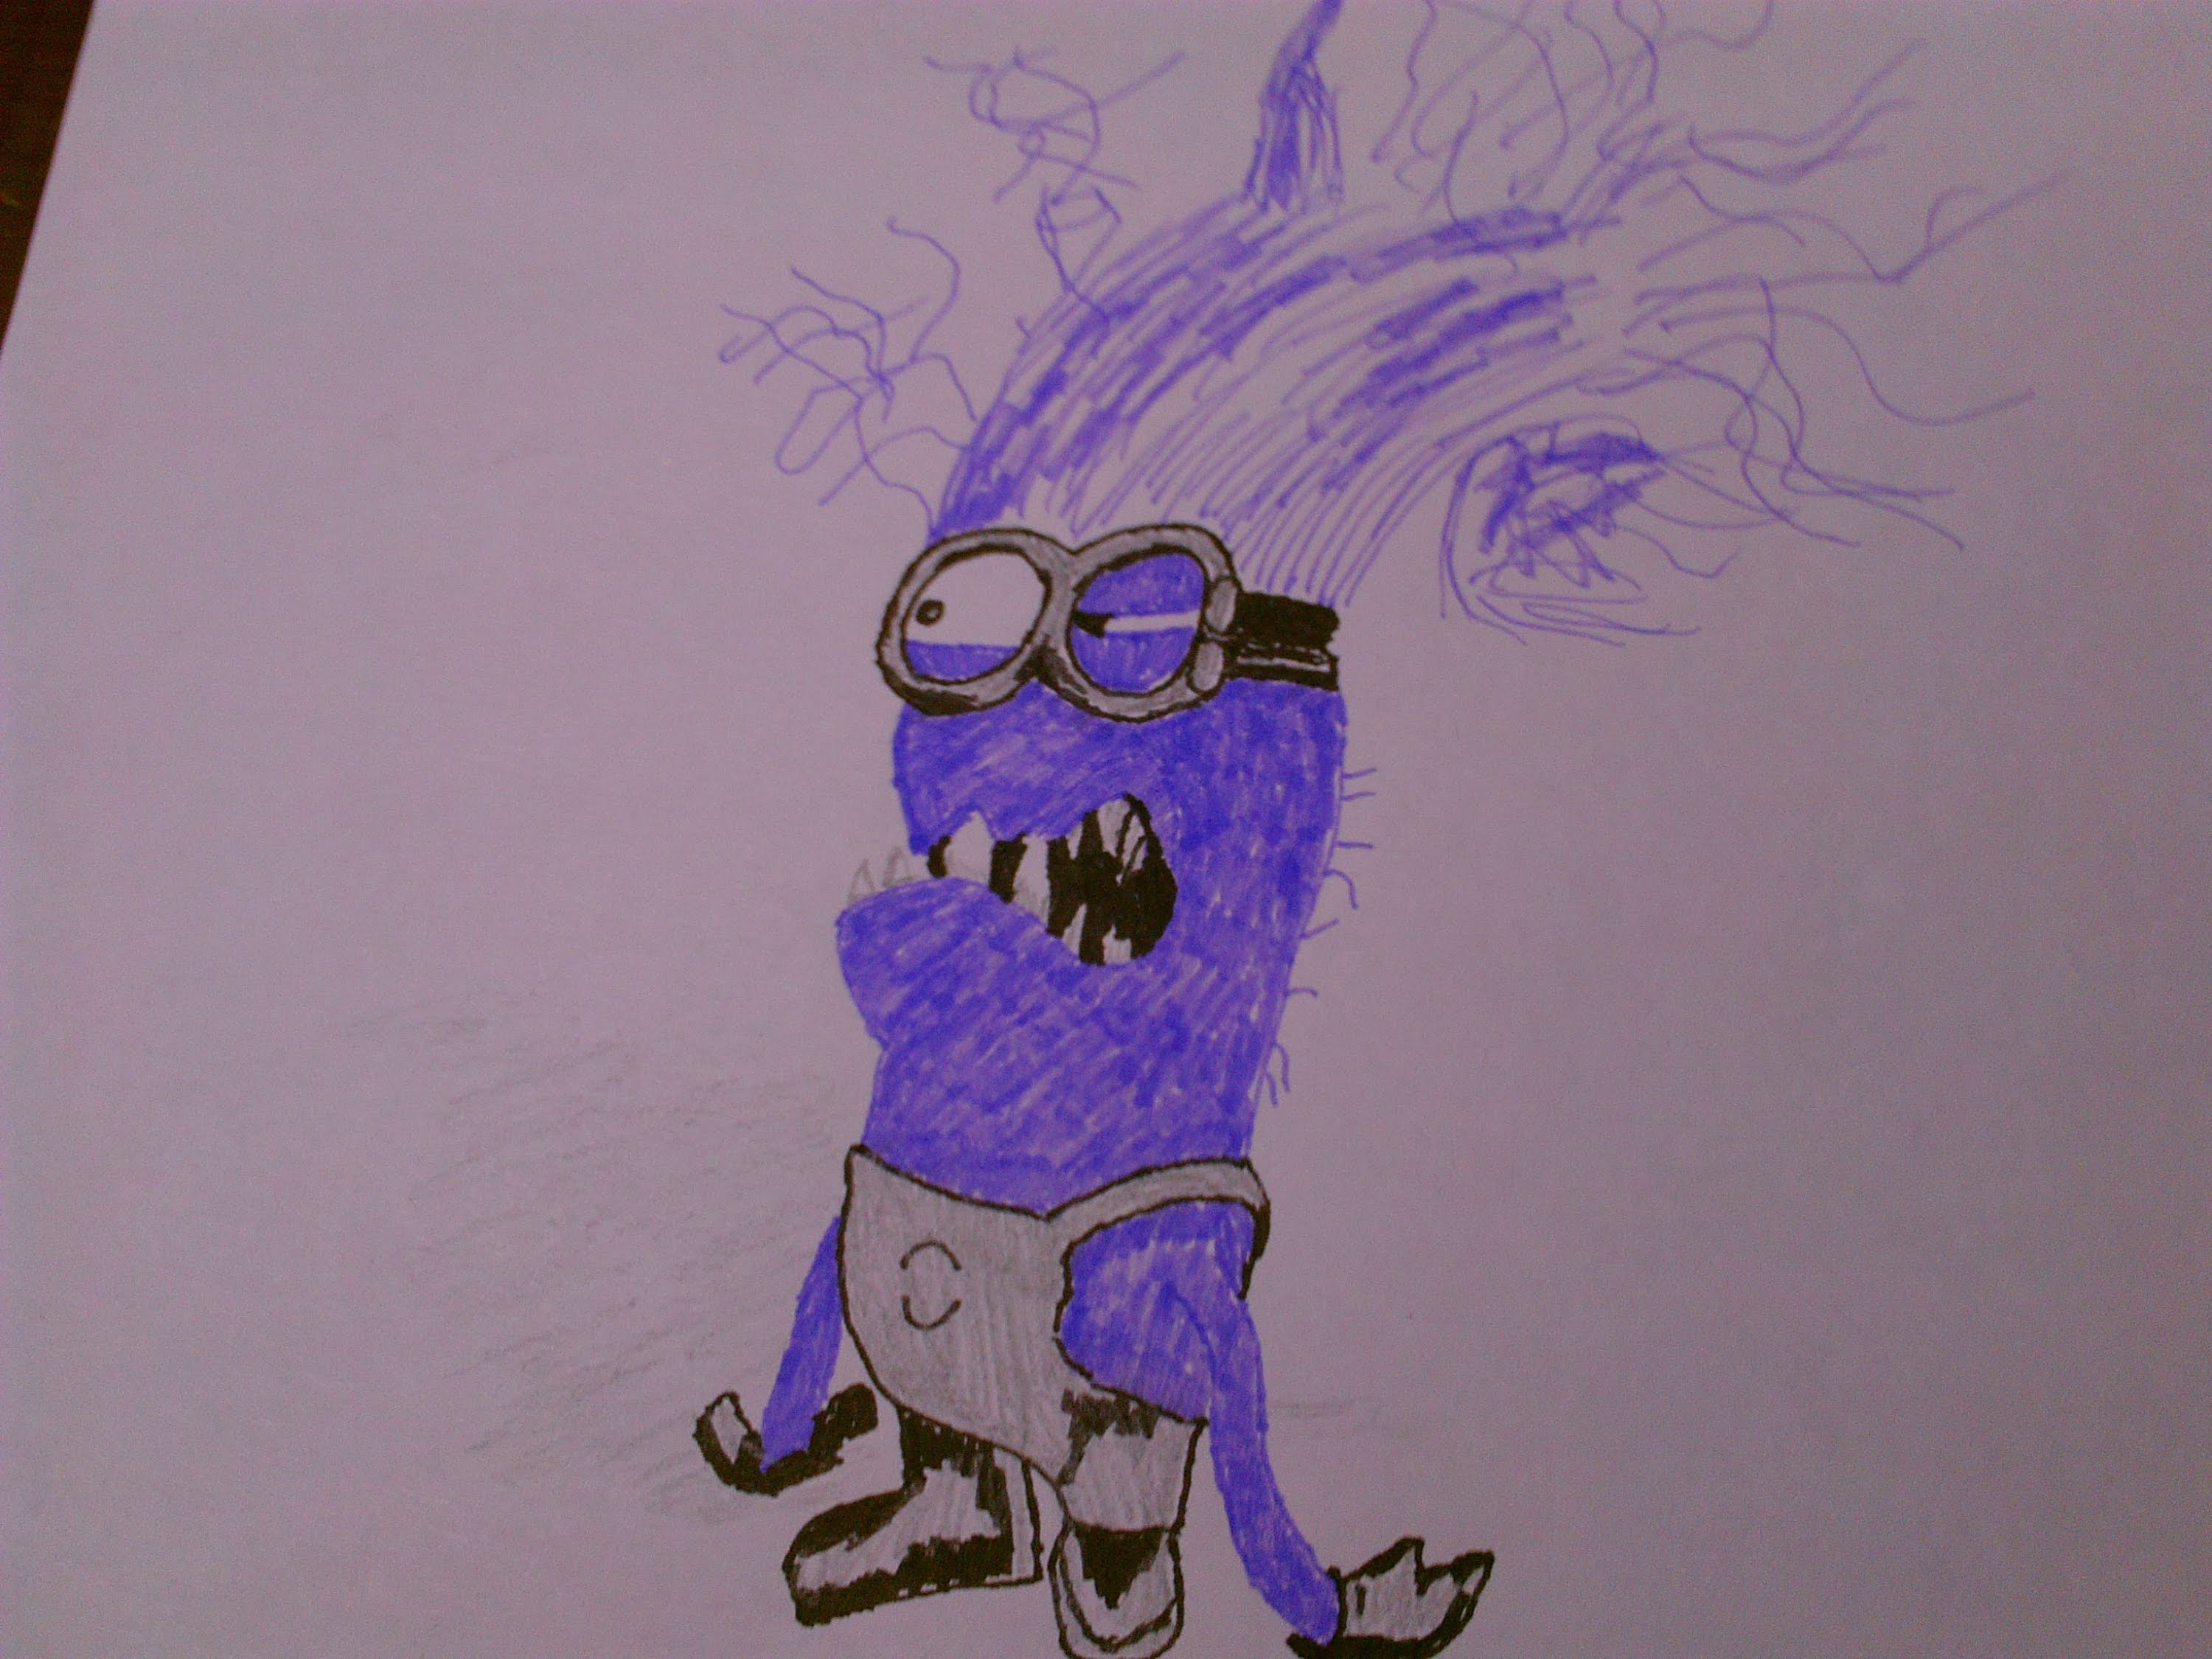 3000x2250 How To Draw A Despicable Me 2 Evil Minion